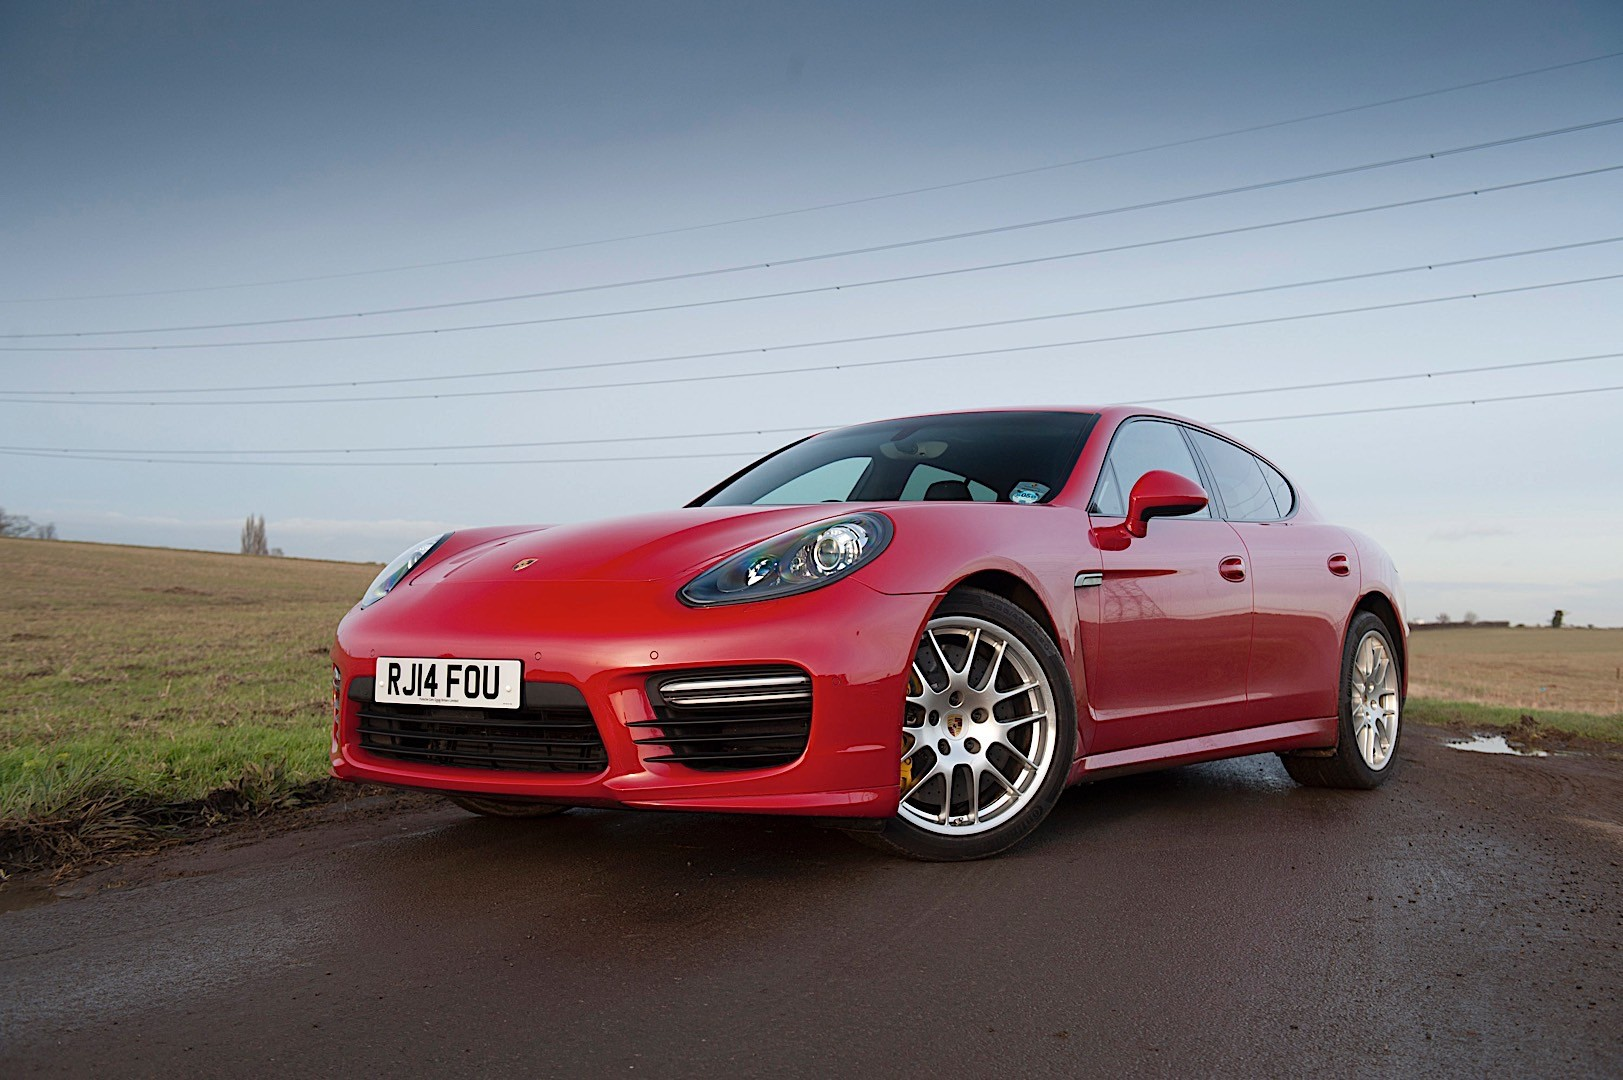 porsche panamera gts 970 specs photos 2013 2014 2015 2016 autoevolution. Black Bedroom Furniture Sets. Home Design Ideas